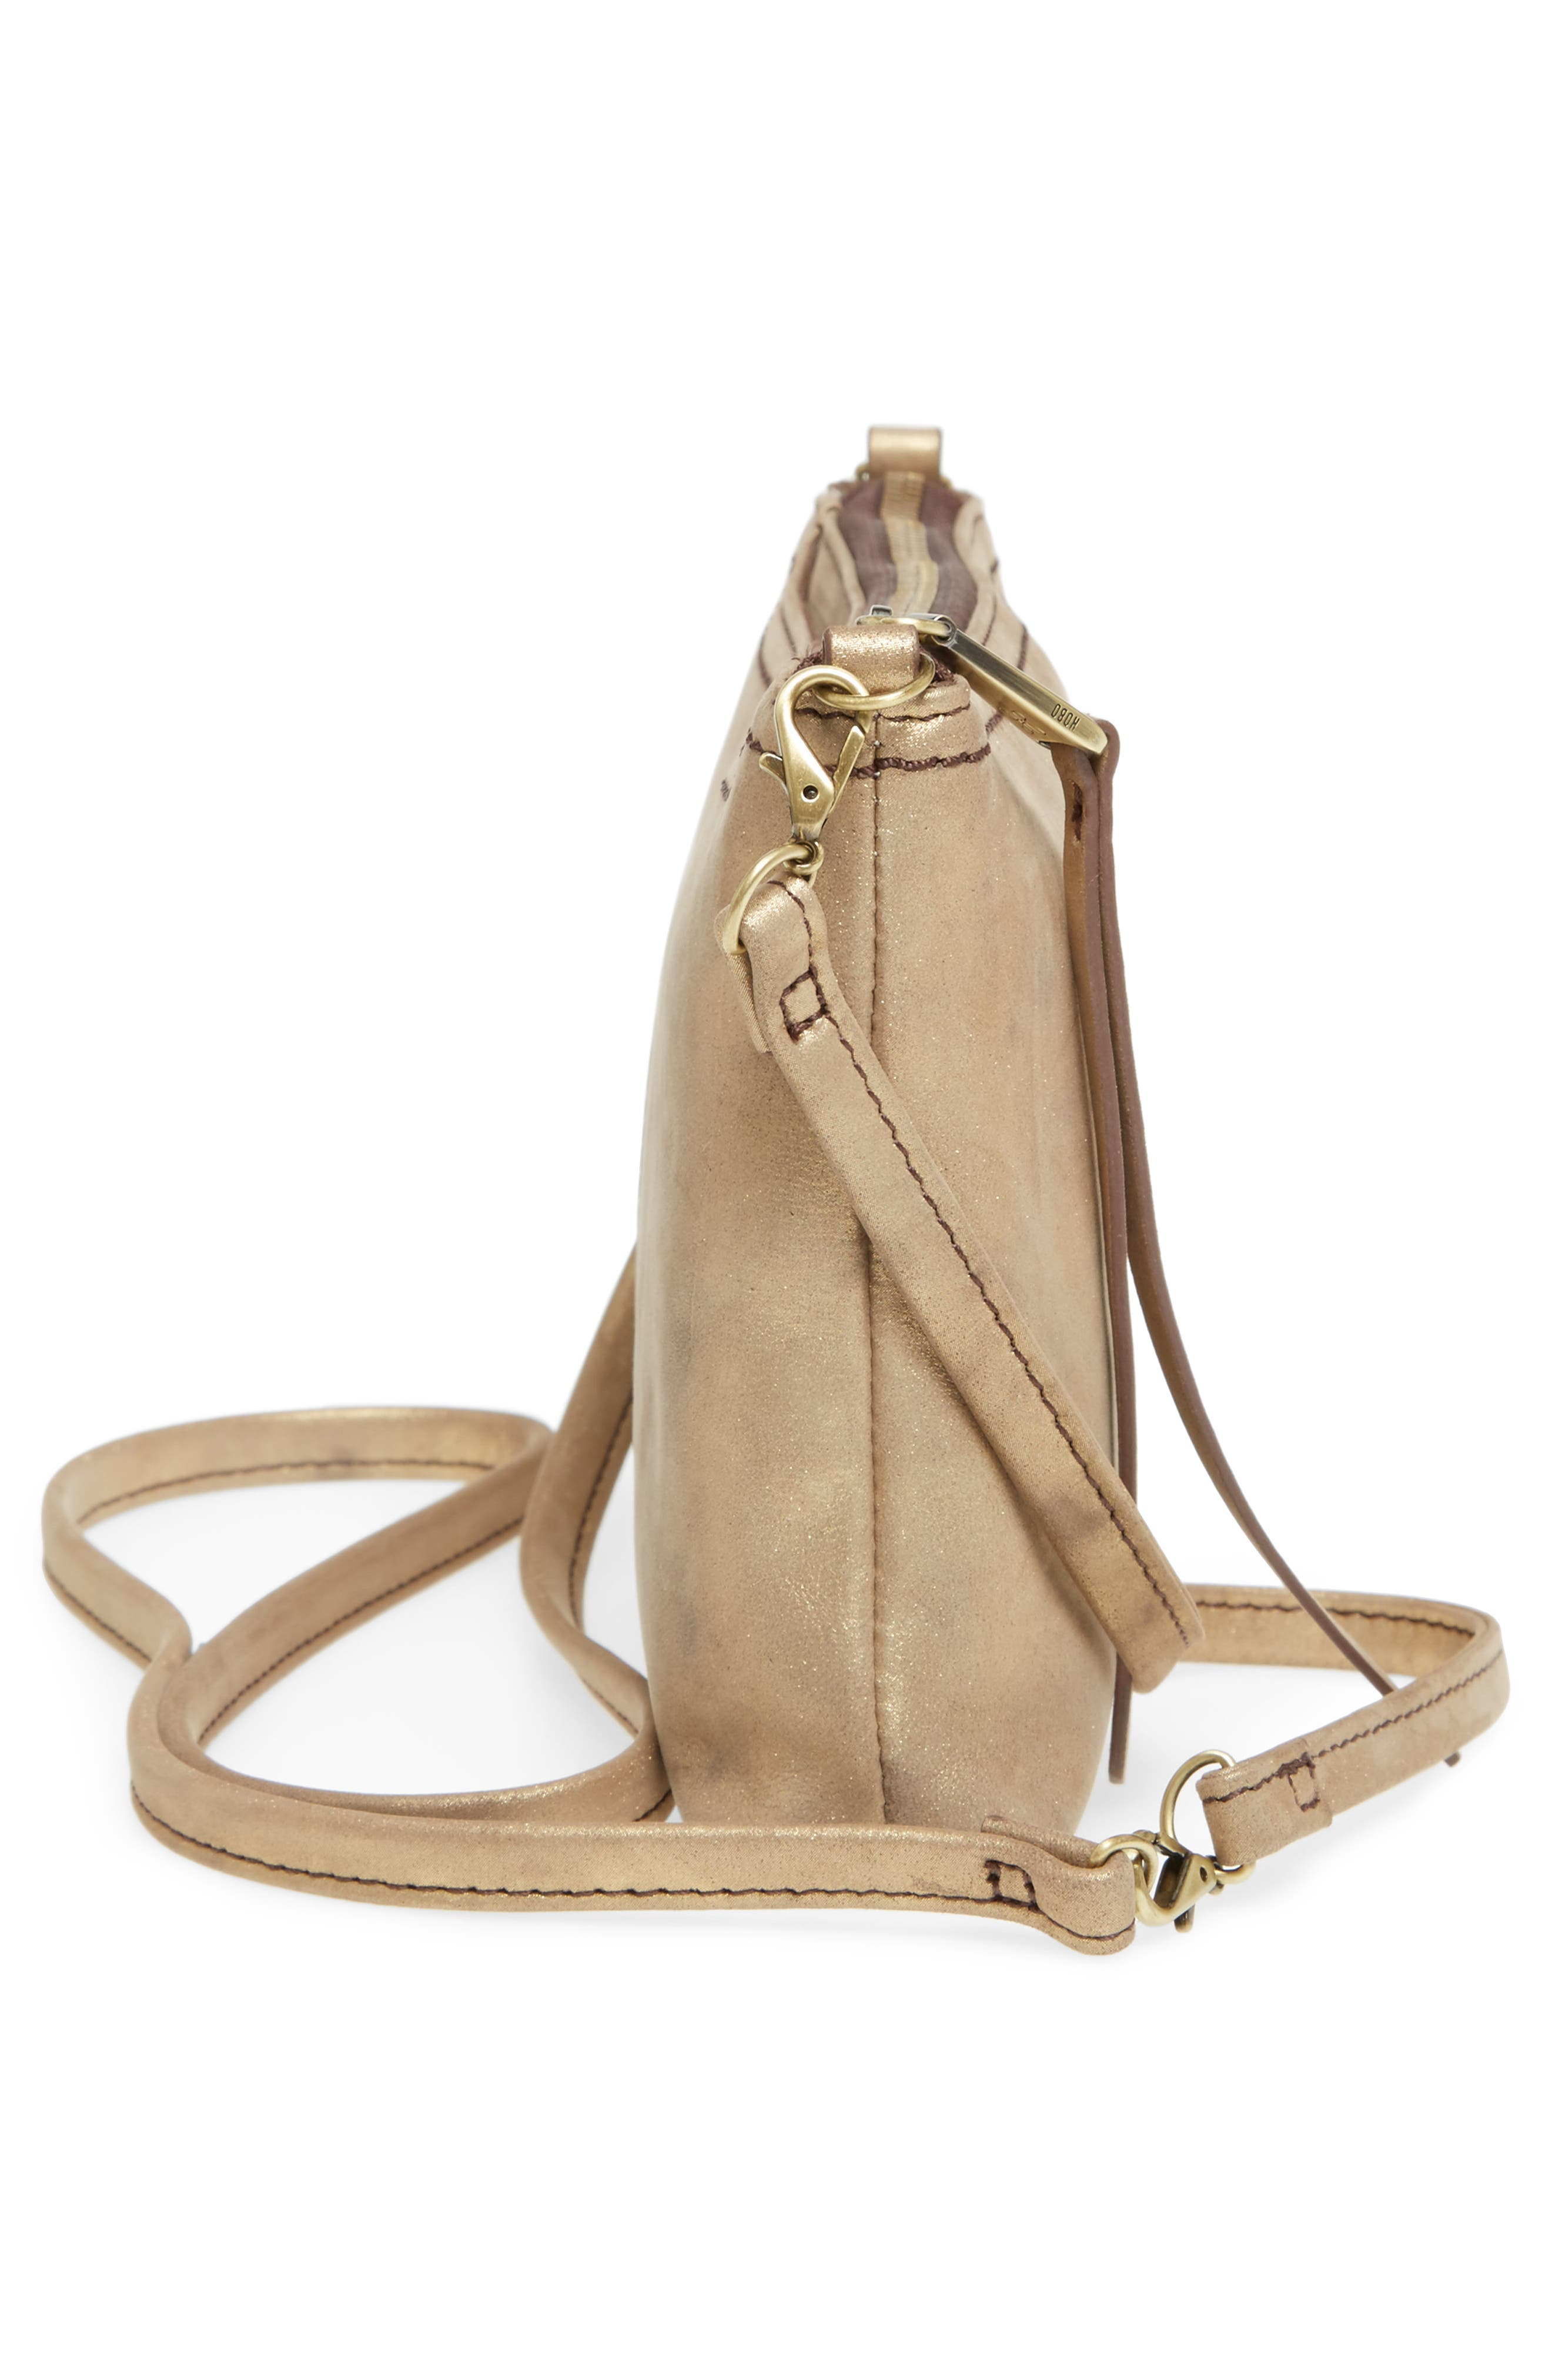 'Darcy' Leather Crossbody Bag,                             Alternate thumbnail 89, color,